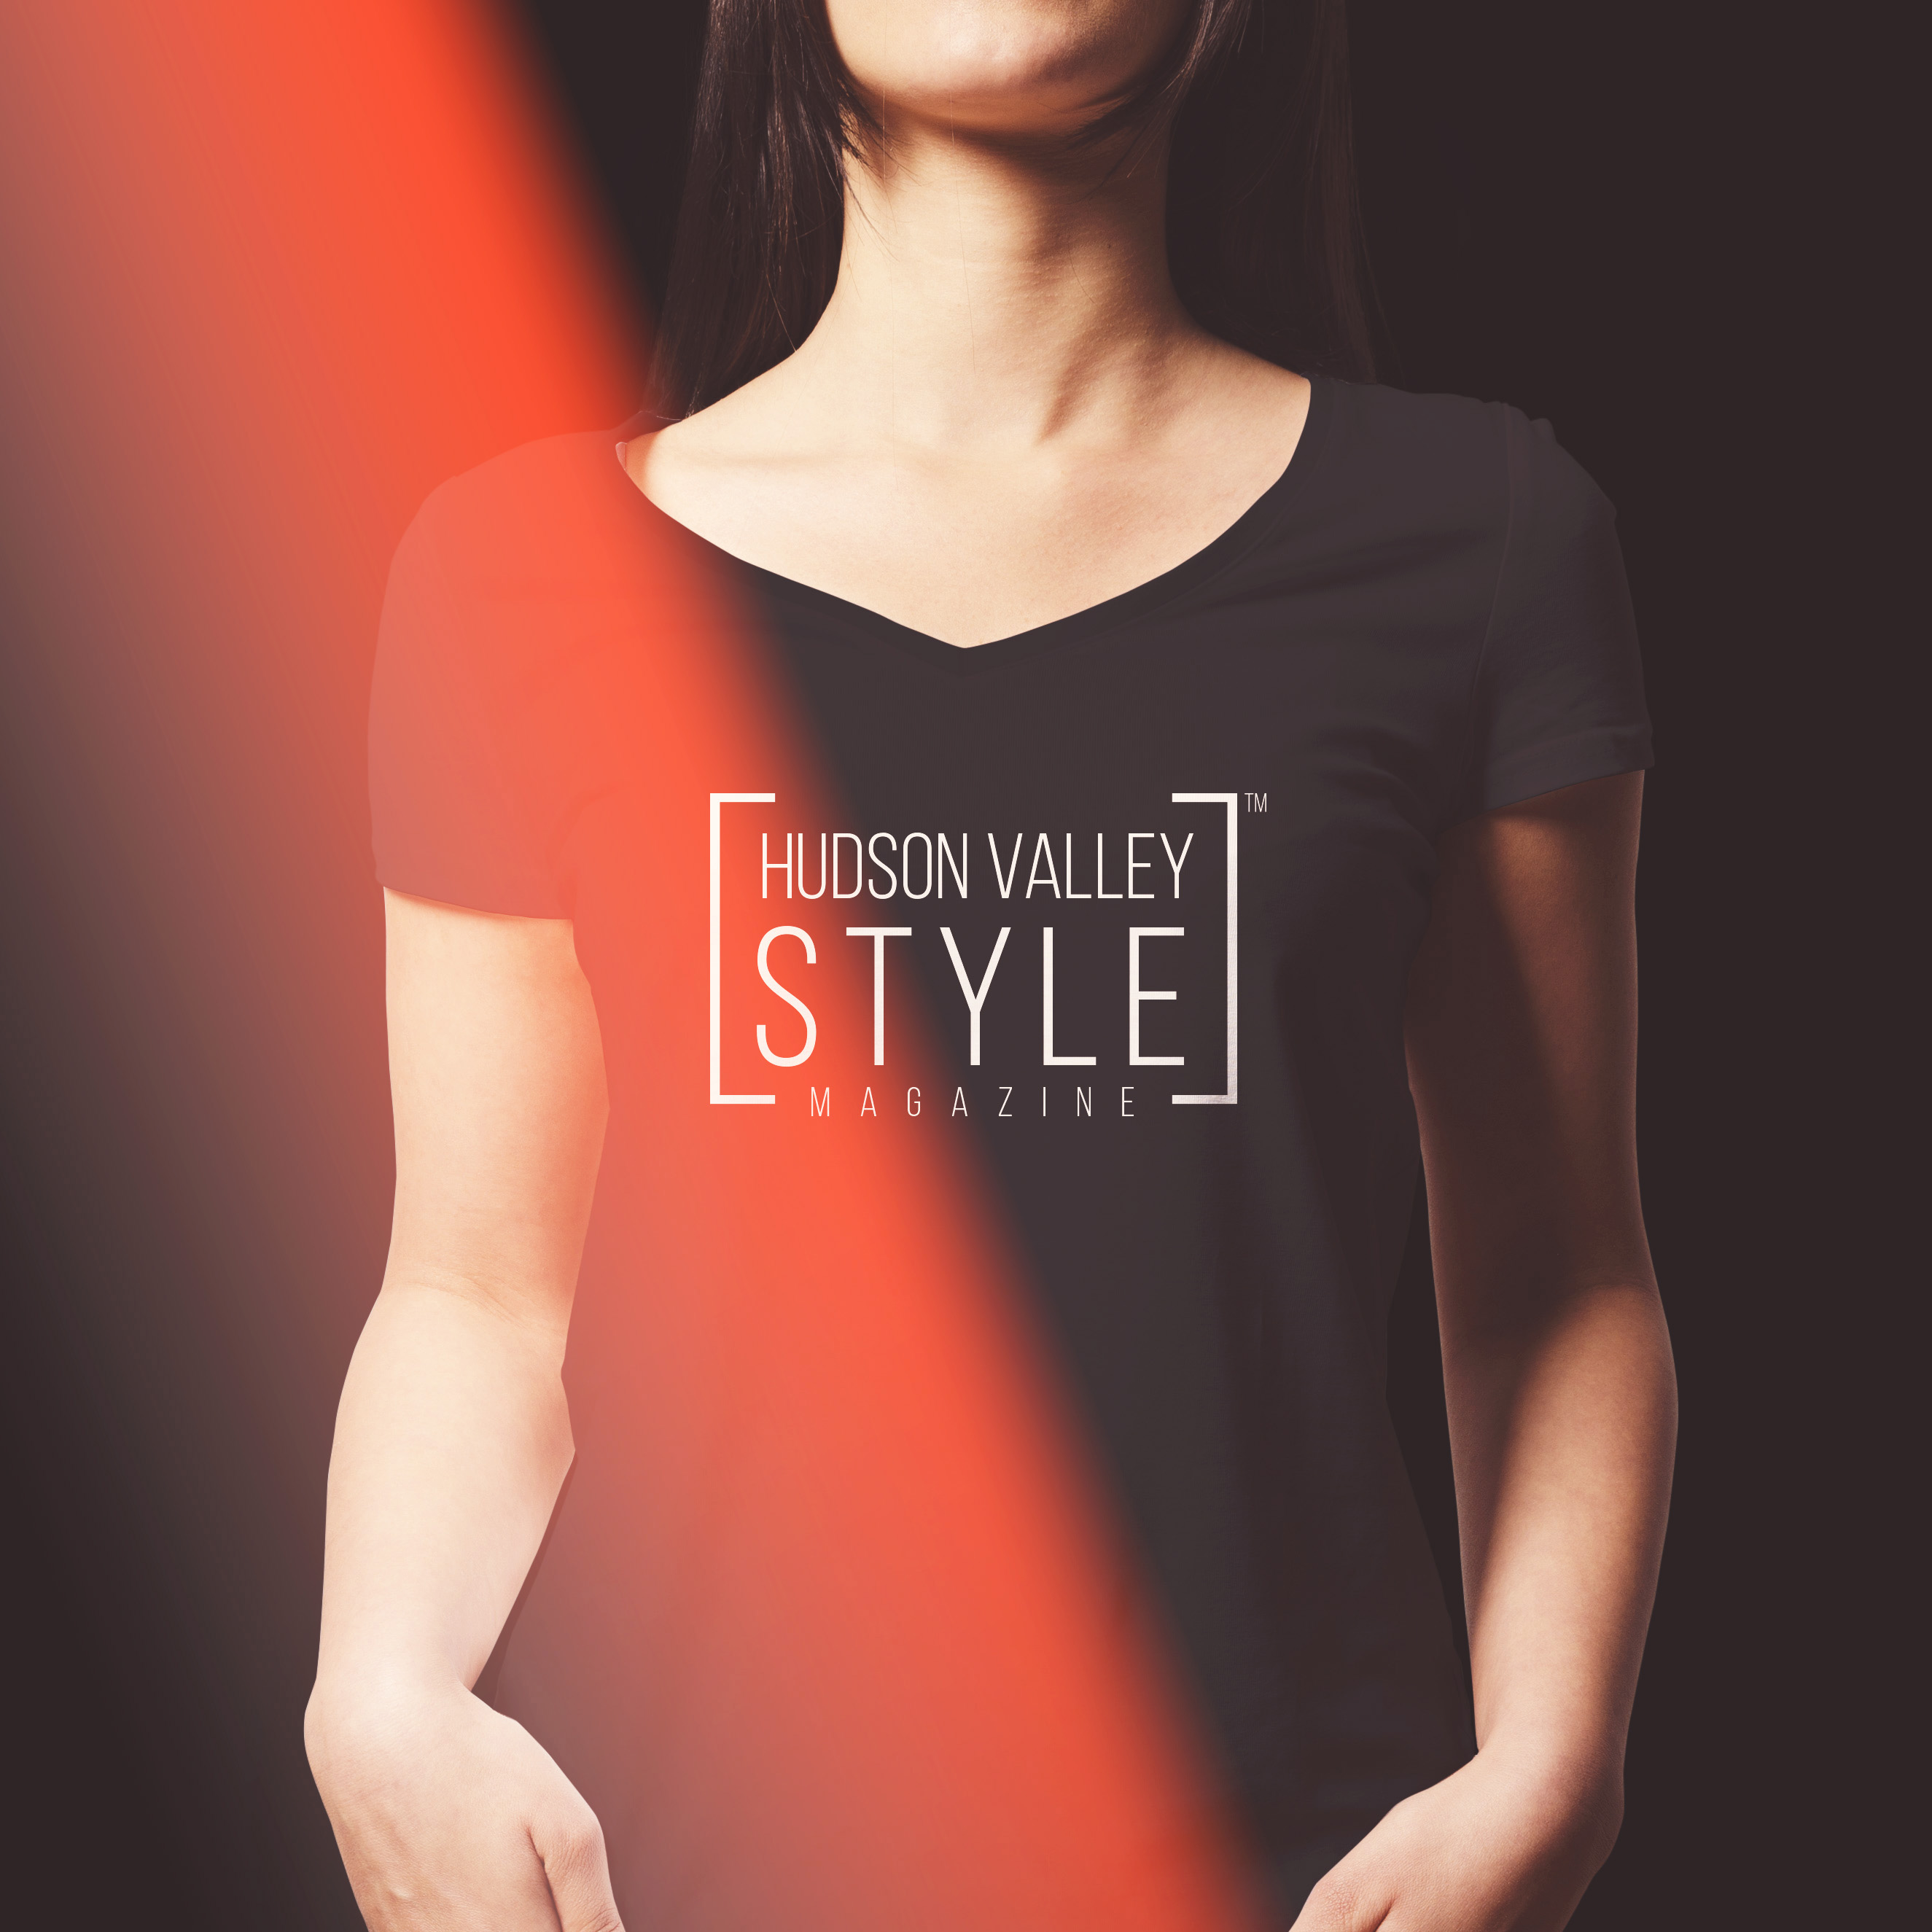 Shop Hudson Valley Style Magazine Apparel in Duncan Avenue's Store